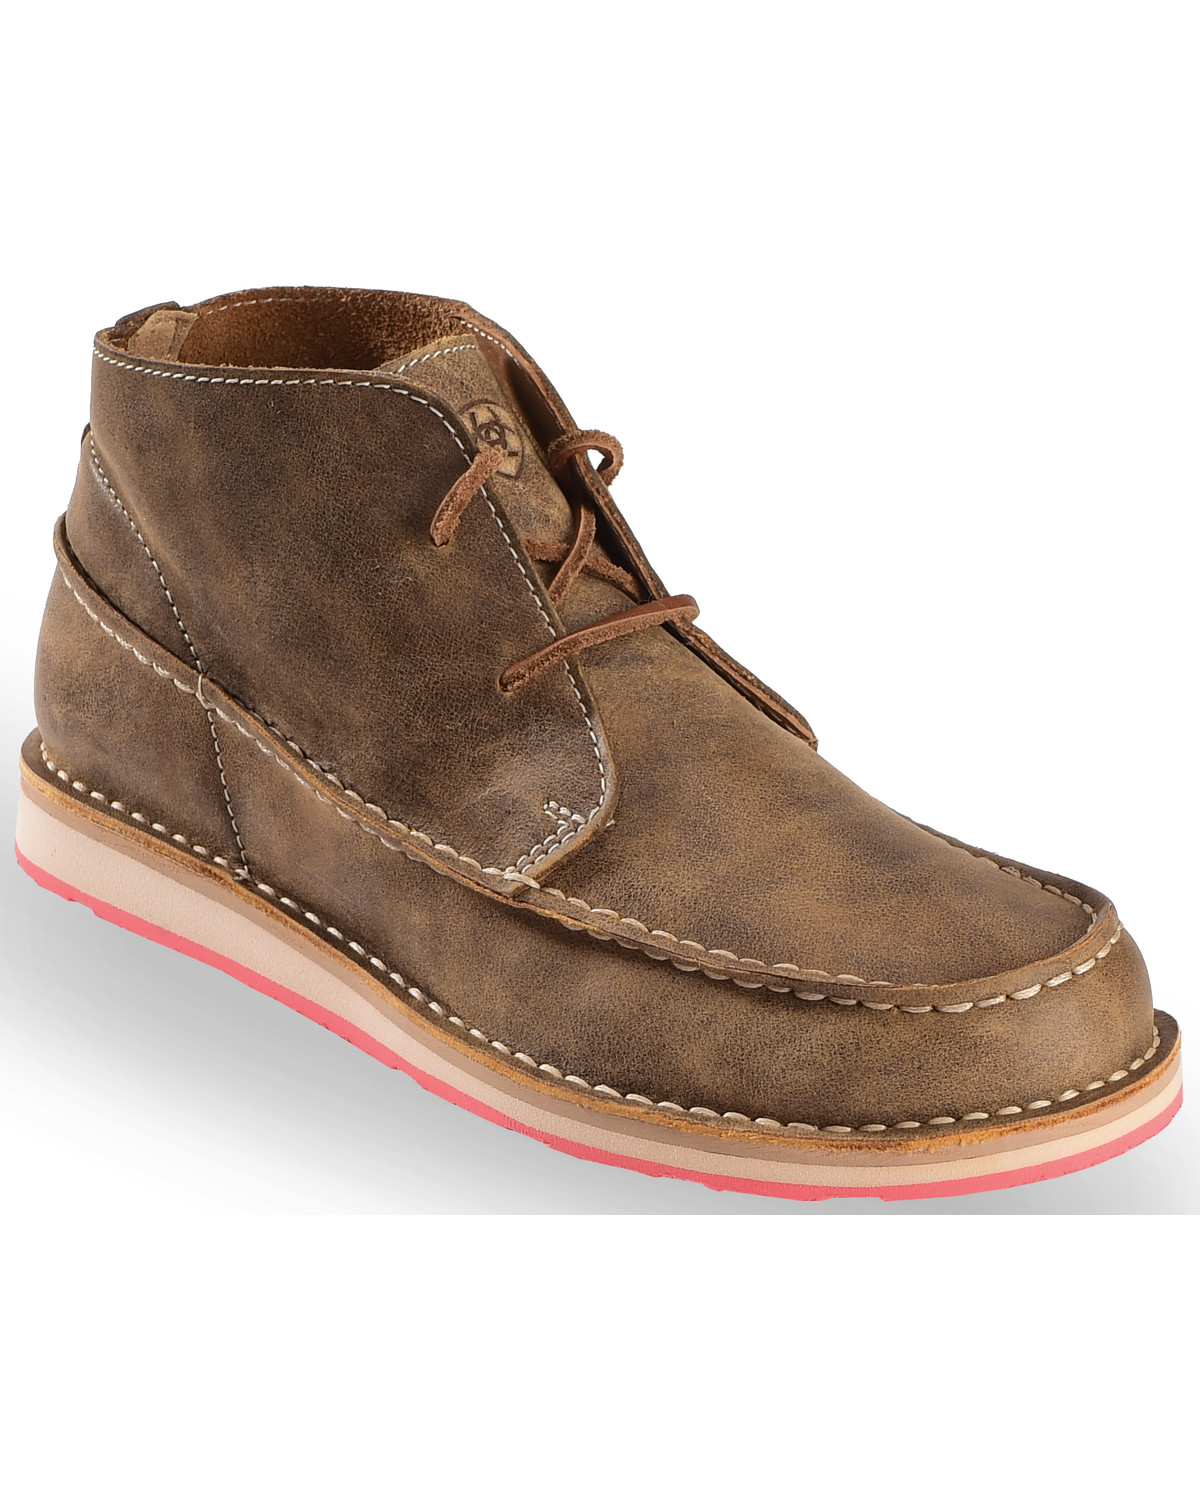 12f7b0def33 Ariat Women s Brown Cruiser Lace-Up Shoes